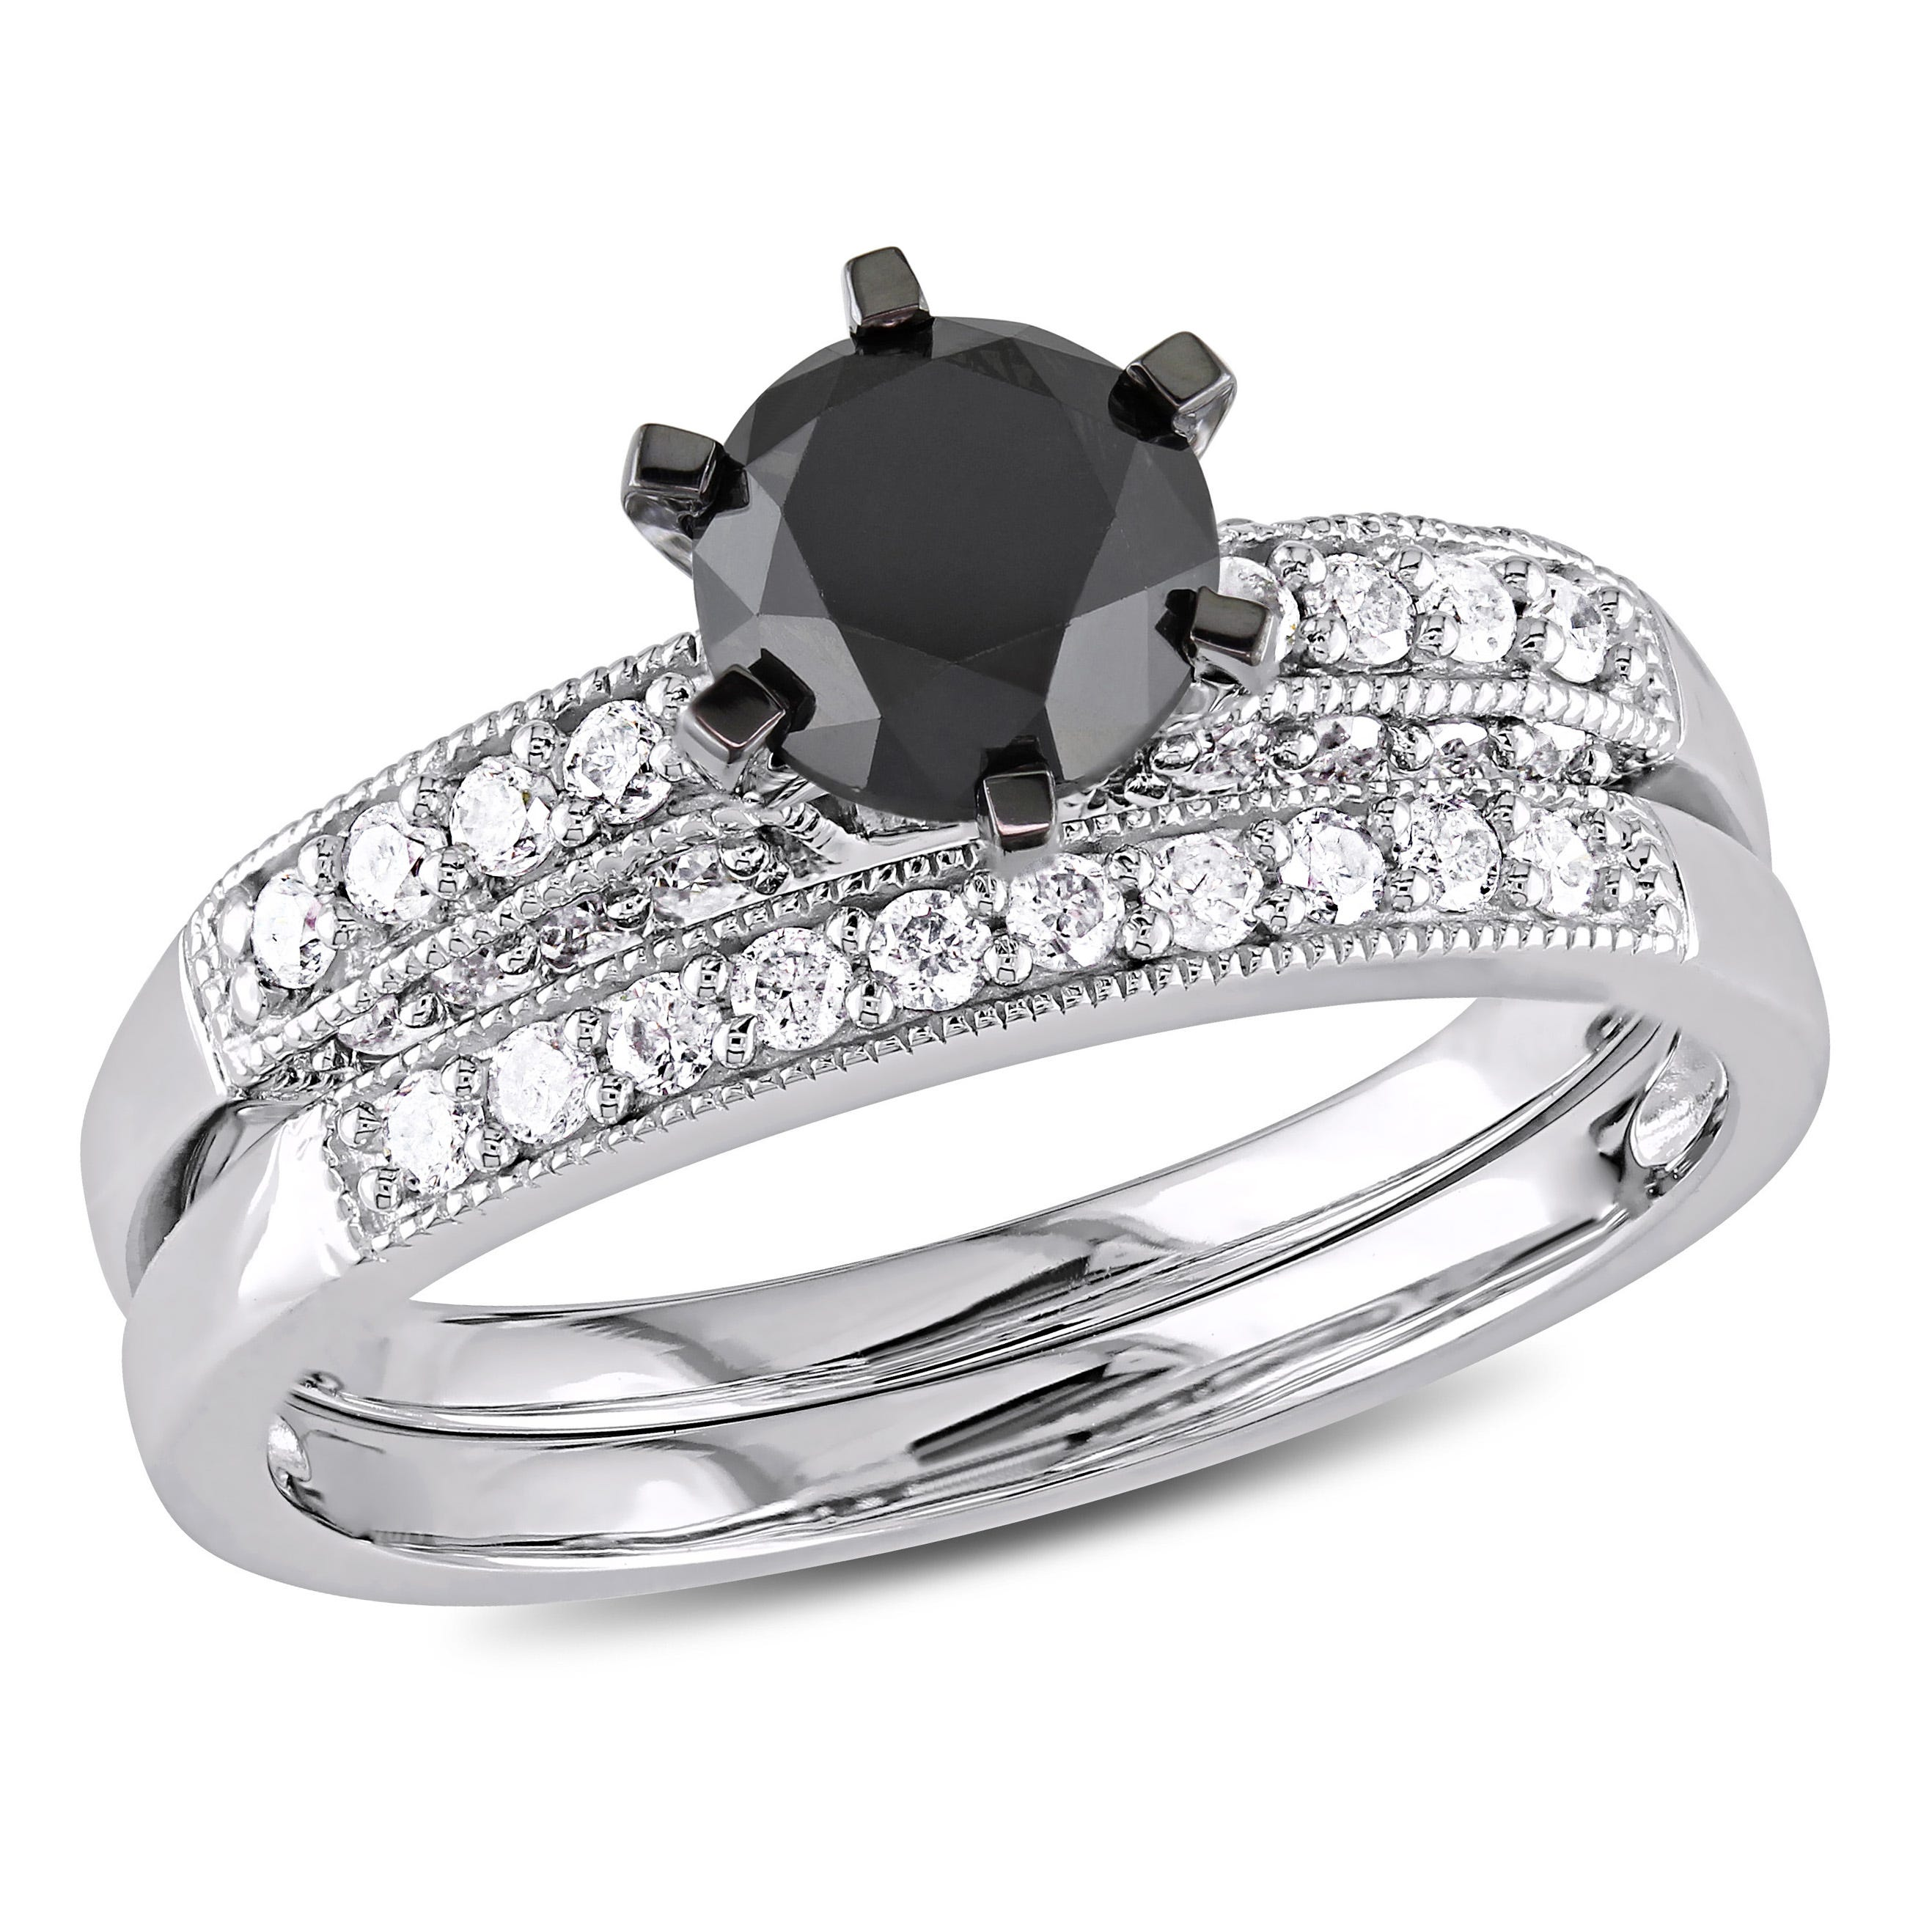 Round Black & White Diamond Engagement Ring + Band 1-1/3ctw. in White Gold